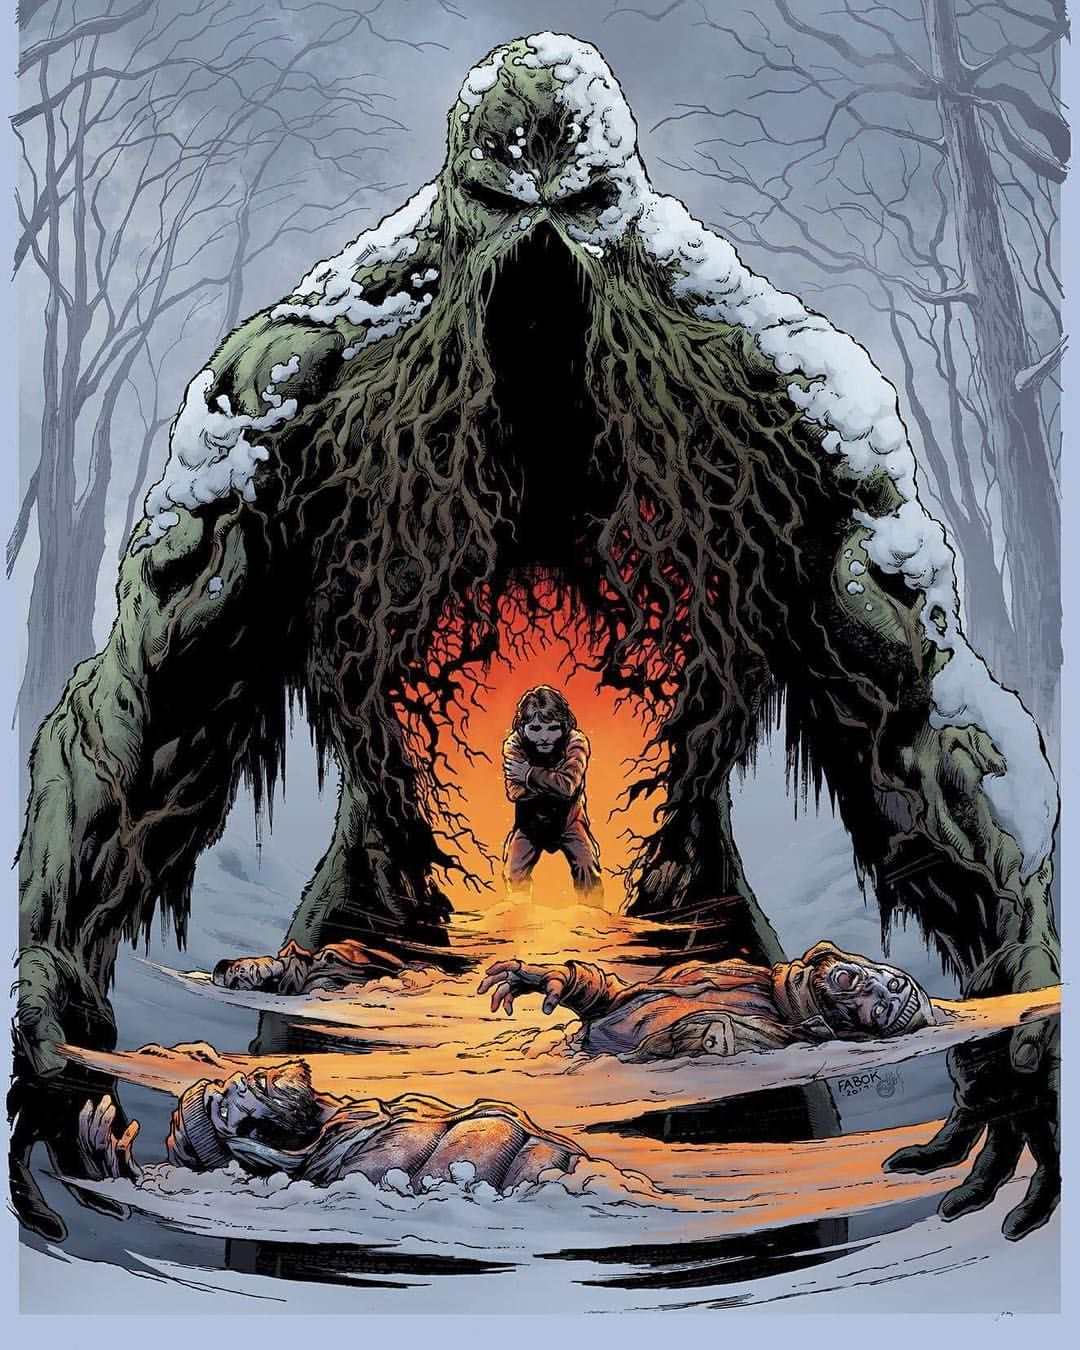 Swamp Thing by Jason Fabok #swampthing